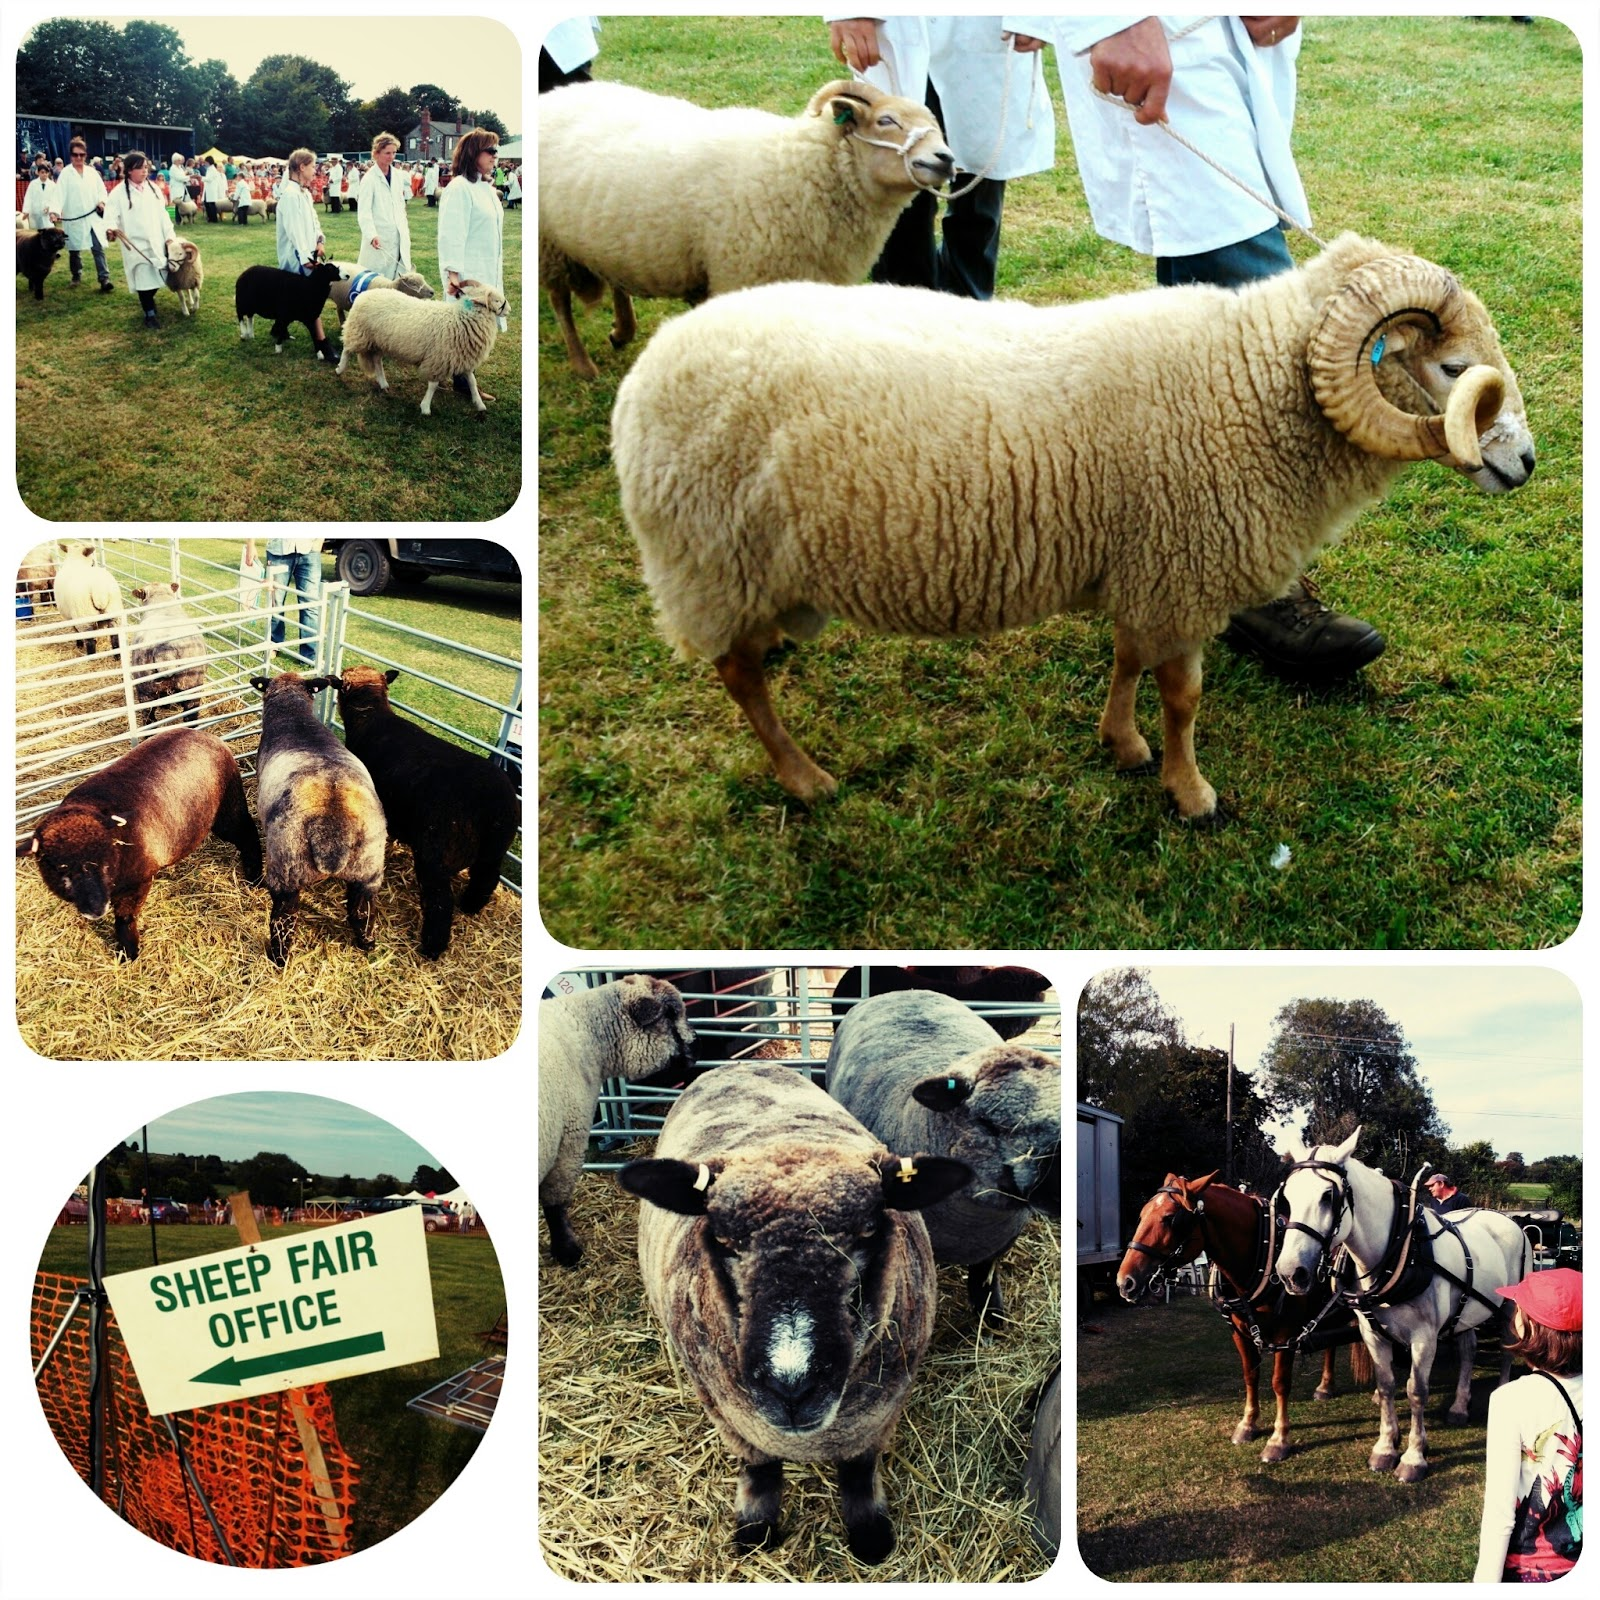 Findon Sheep Fair's most beautiful